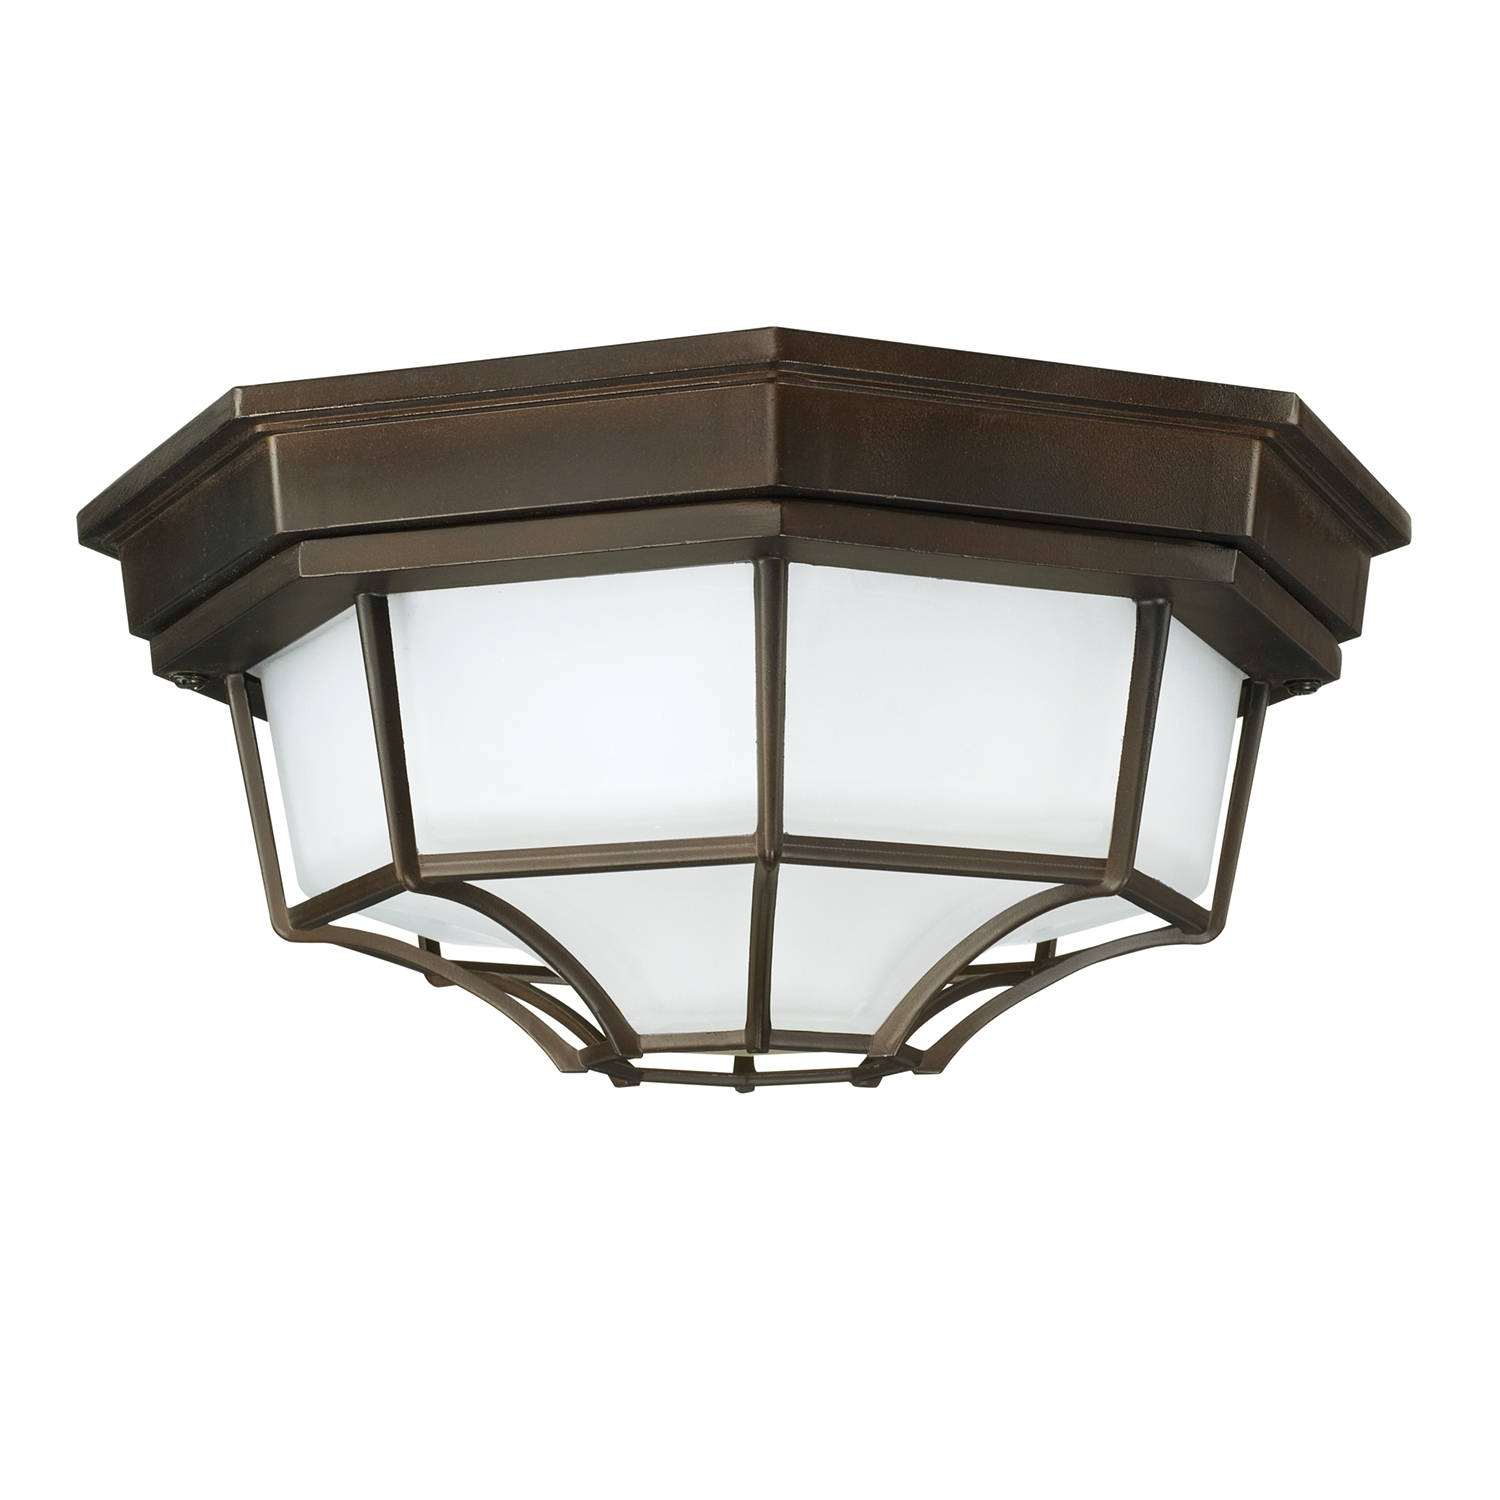 Outdoor Ceiling Lights With Sensor Within Recent Outdoor Ceiling Lighting (View 15 of 20)